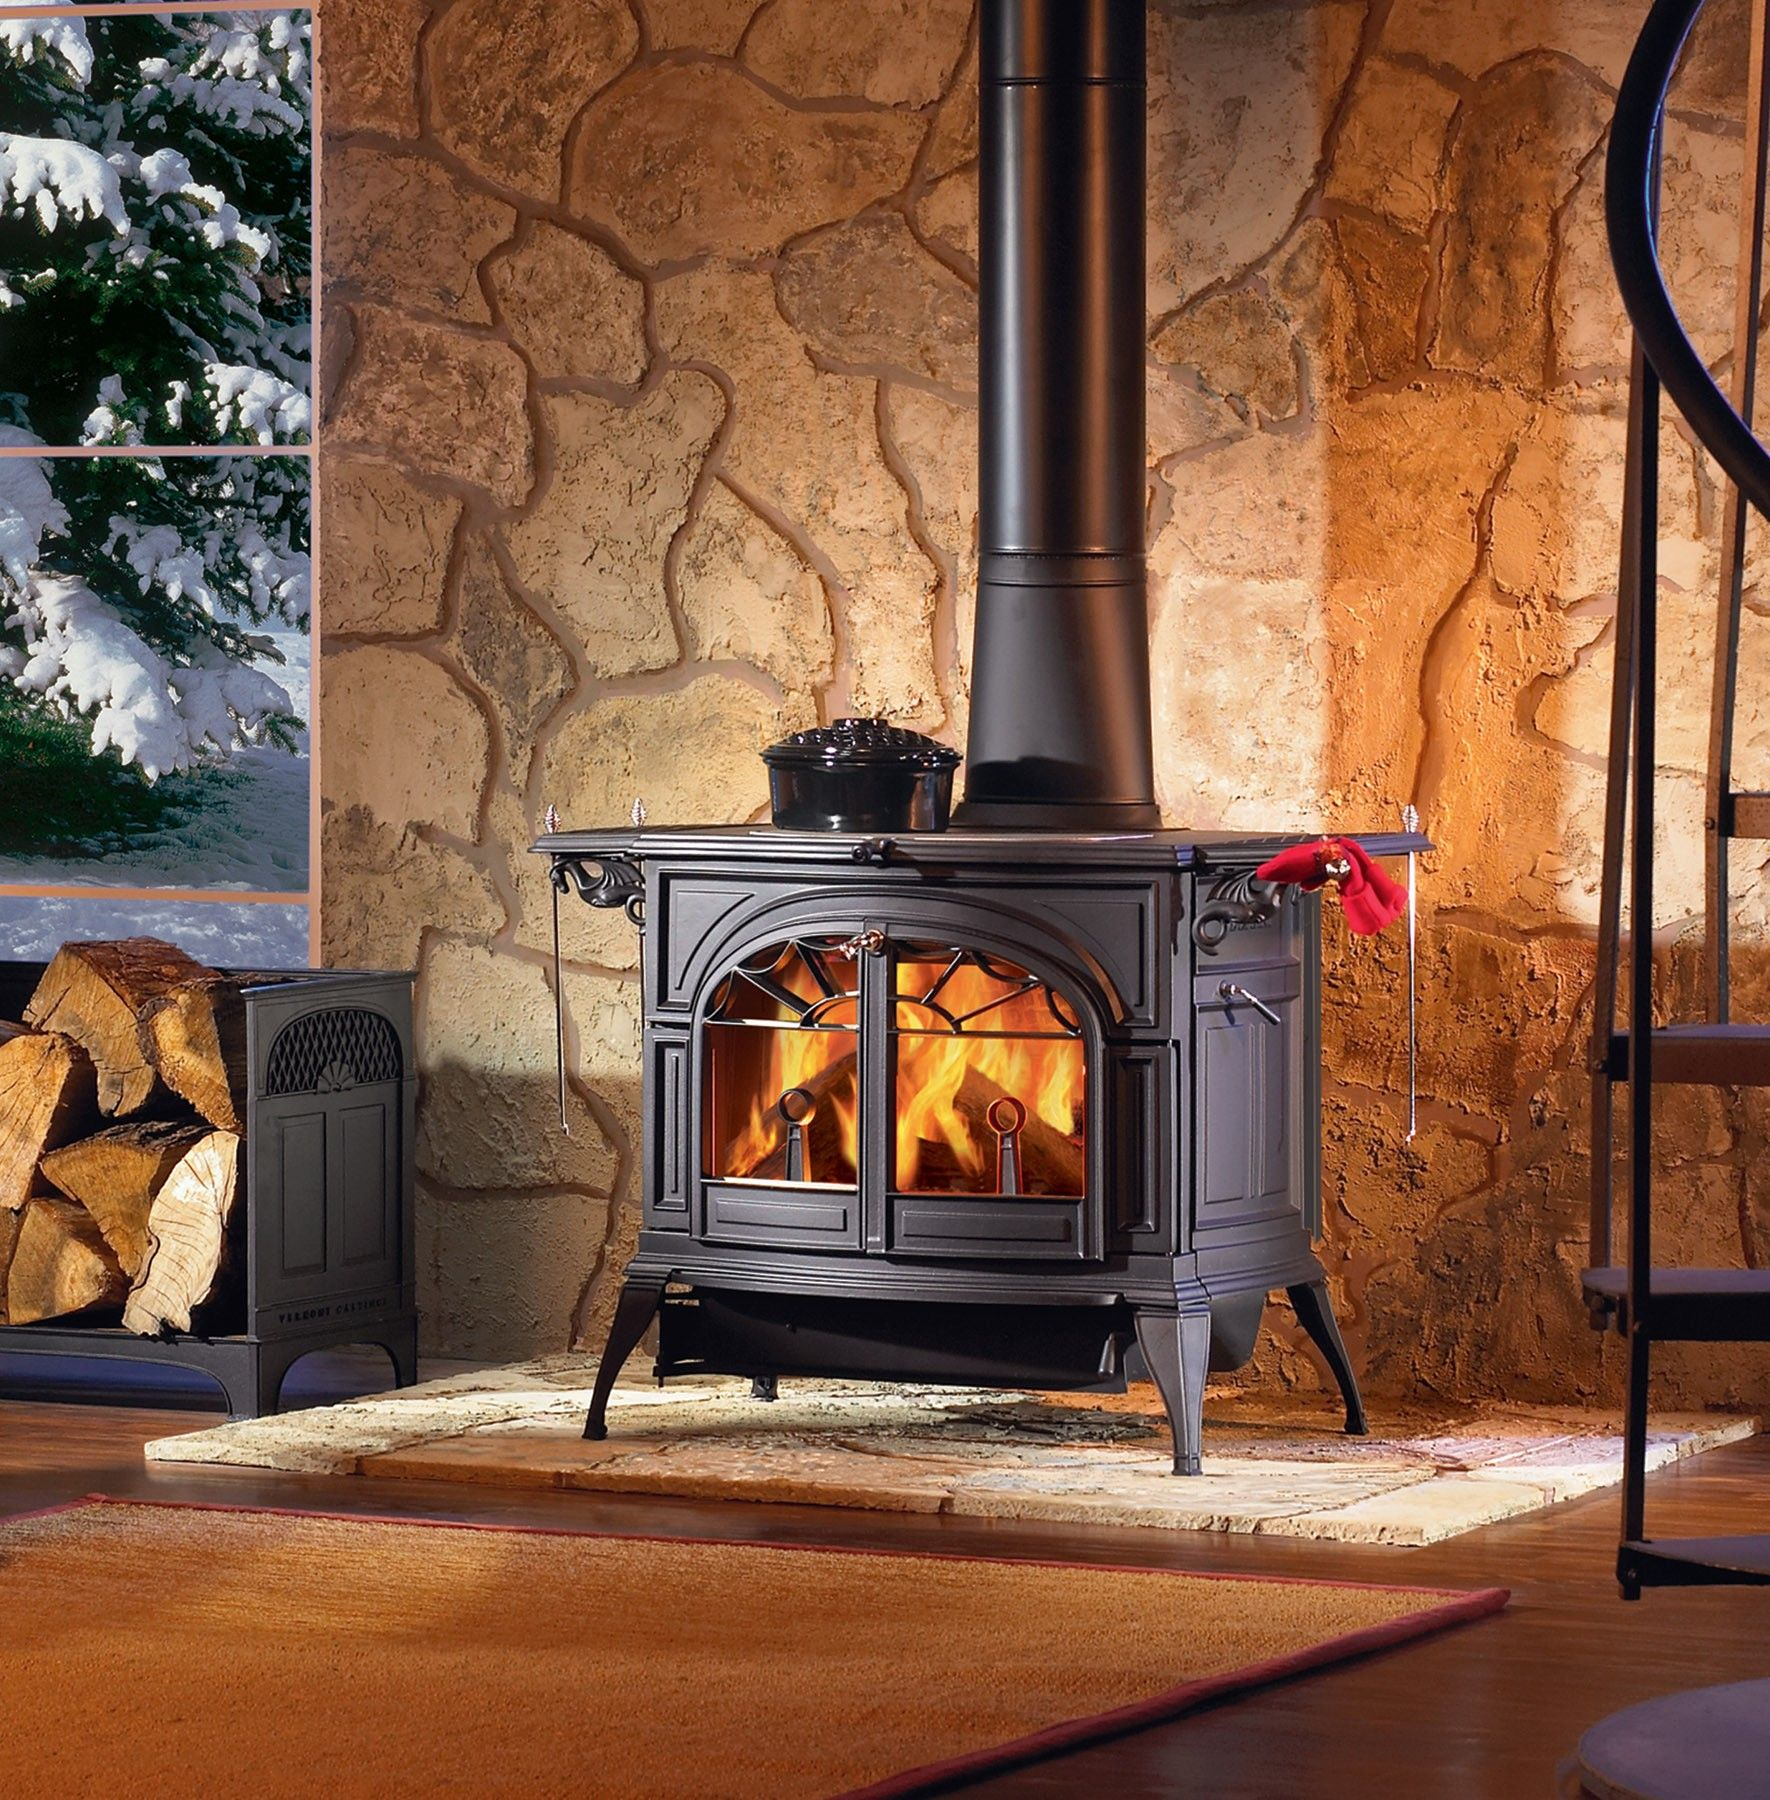 inseason fireplaces stoves grills rochester ny fireside